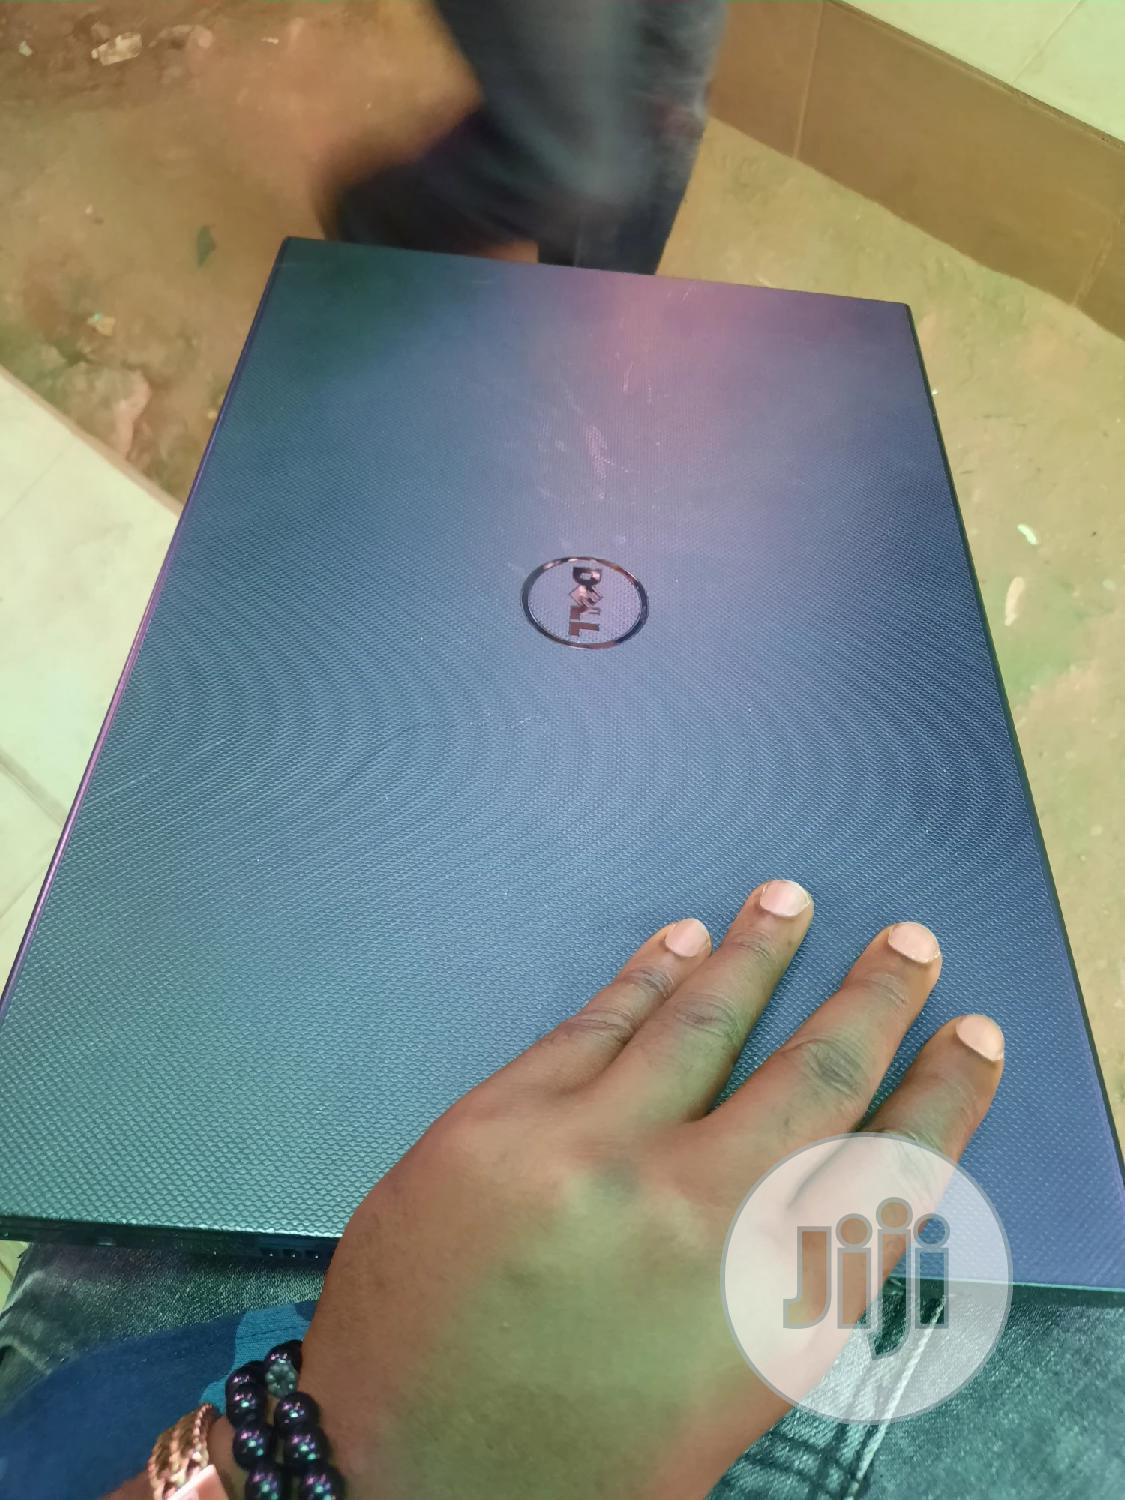 Laptop Dell Inspiron 15 3558 8GB Intel Core i5 HDD 500GB | Laptops & Computers for sale in Wuse, Abuja (FCT) State, Nigeria